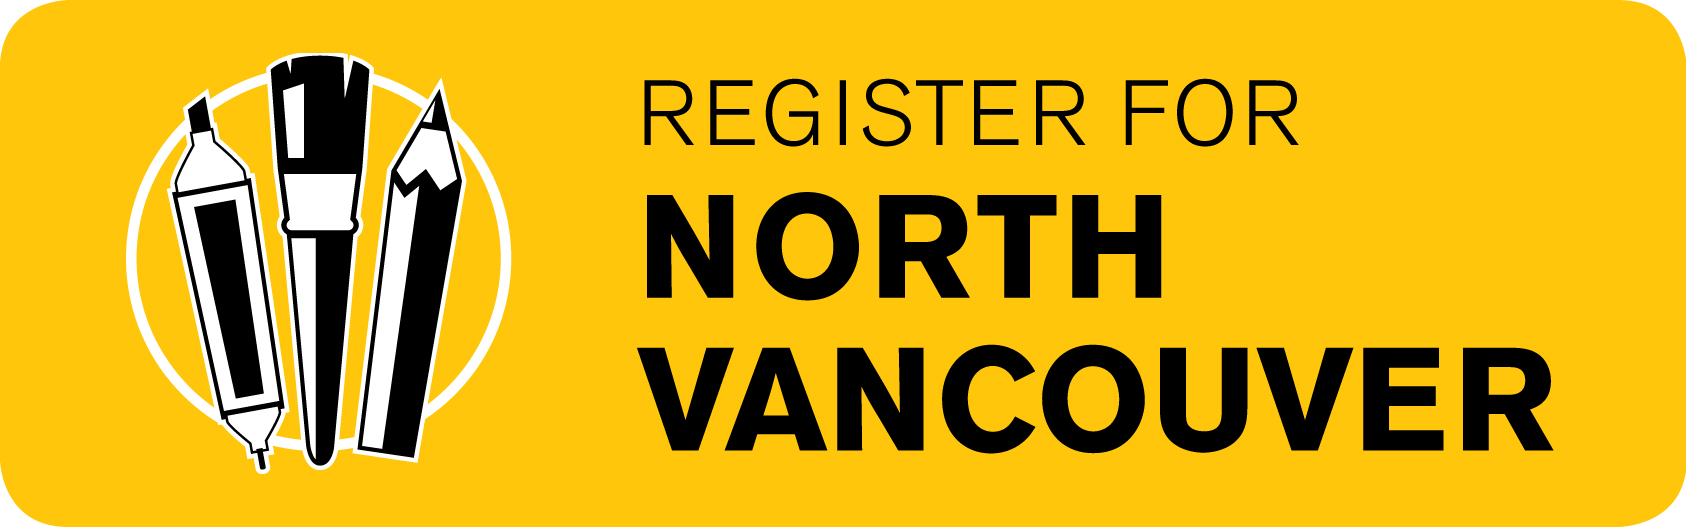 Register for North Vancouver